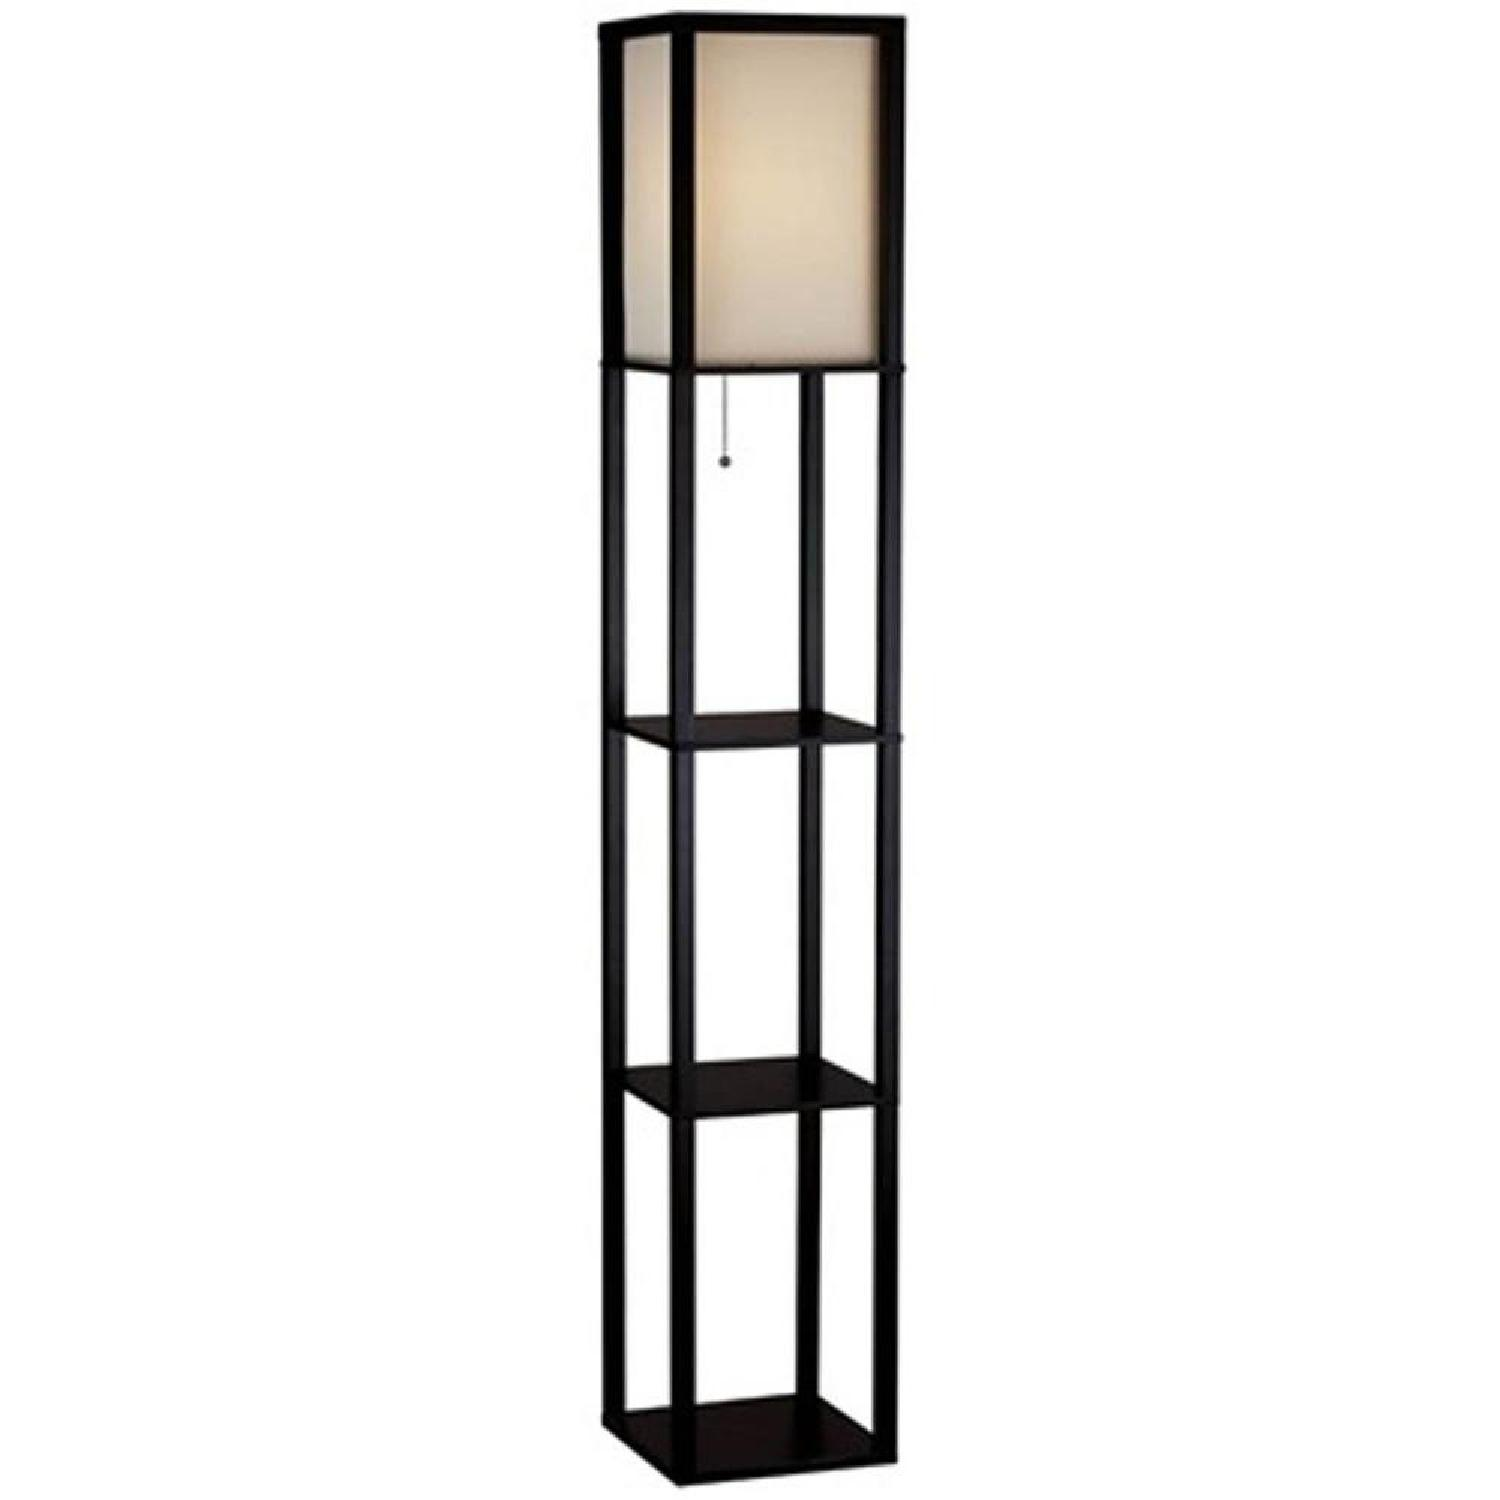 Home Depot Black Shelf Floor Lamp w/ Ivory Fabric Shade